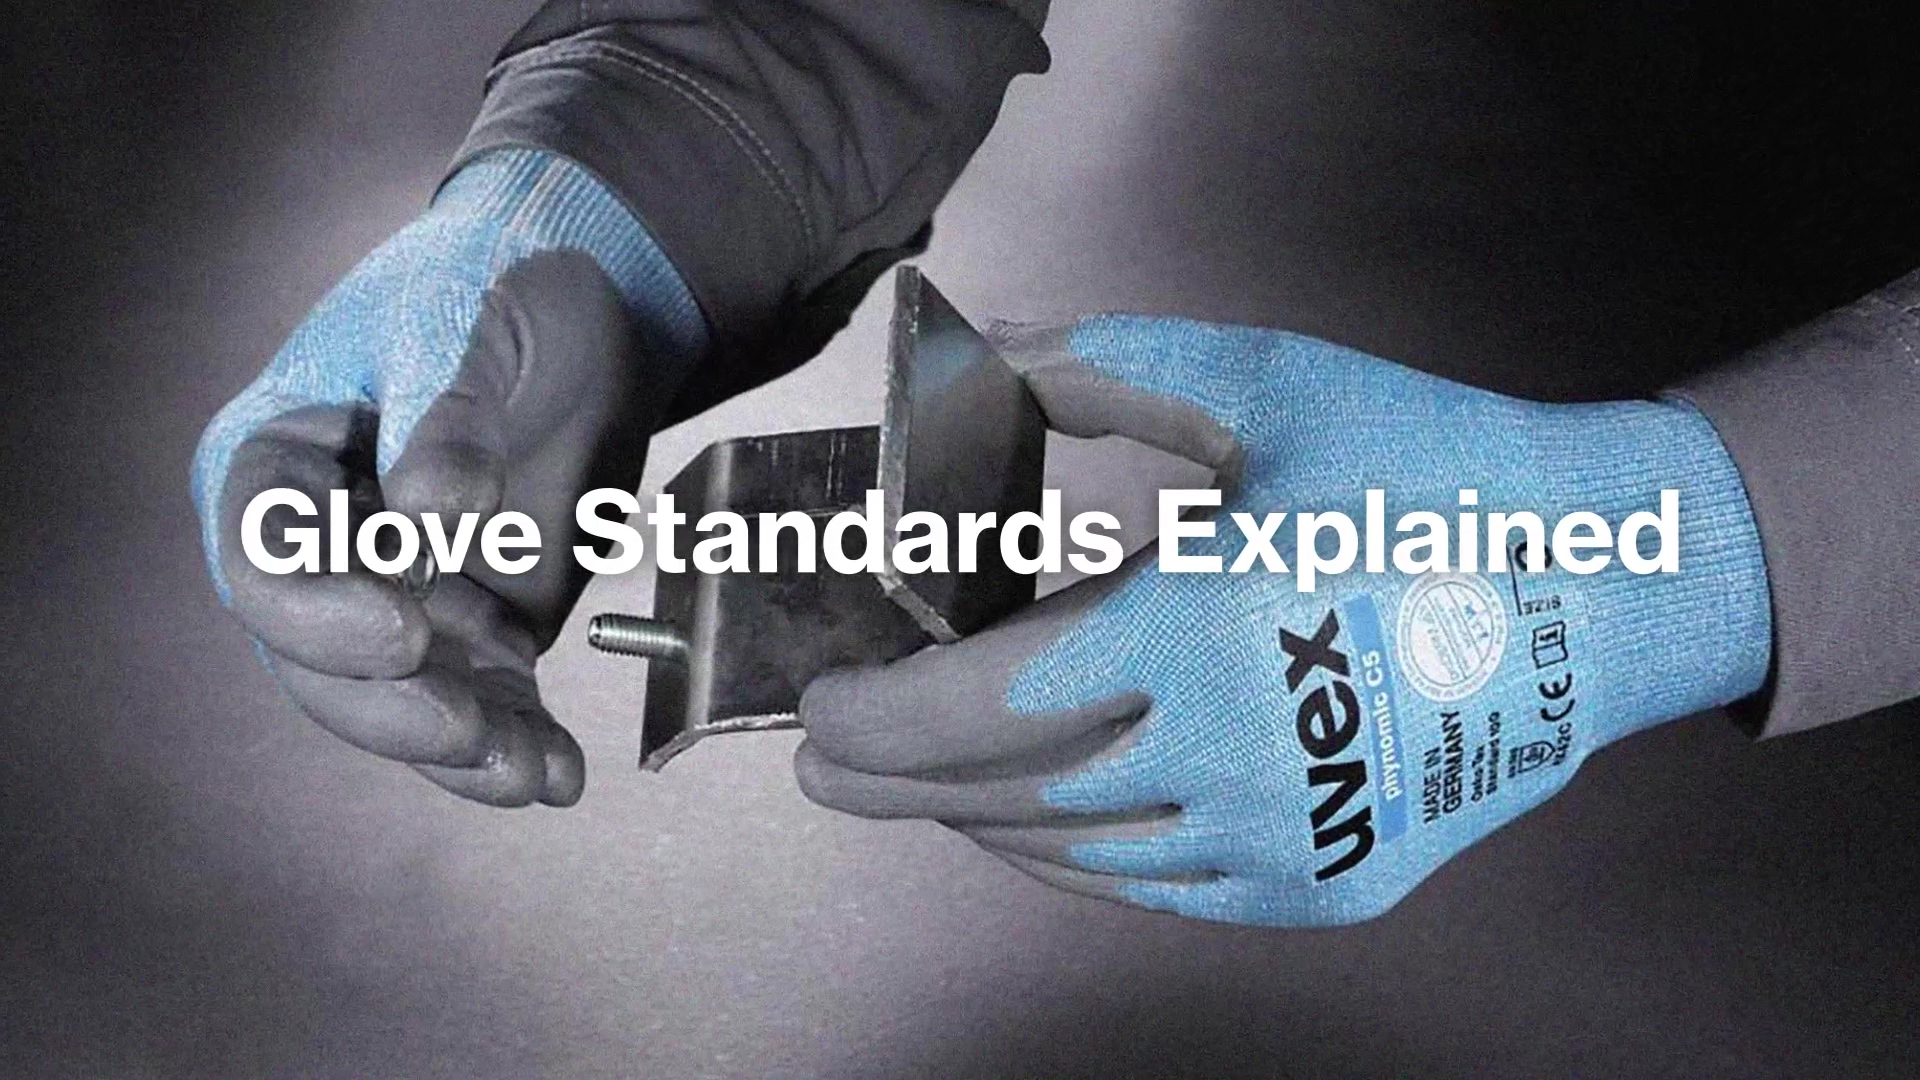 uvex Glove Standards-Youtube